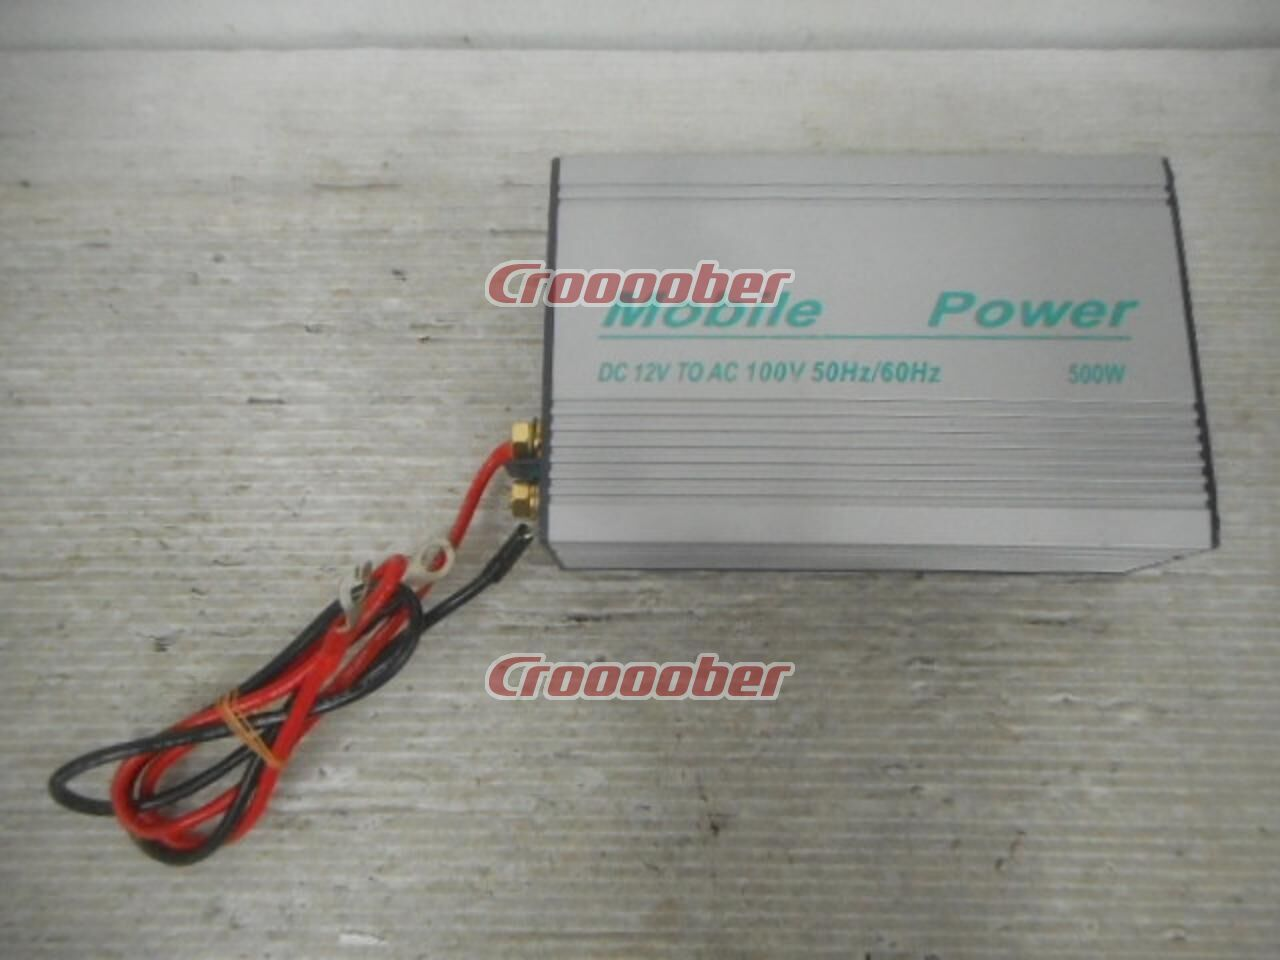 Manufacturer Unknown Mobile Power 500W DC-AC Inverter ☆ Household ...